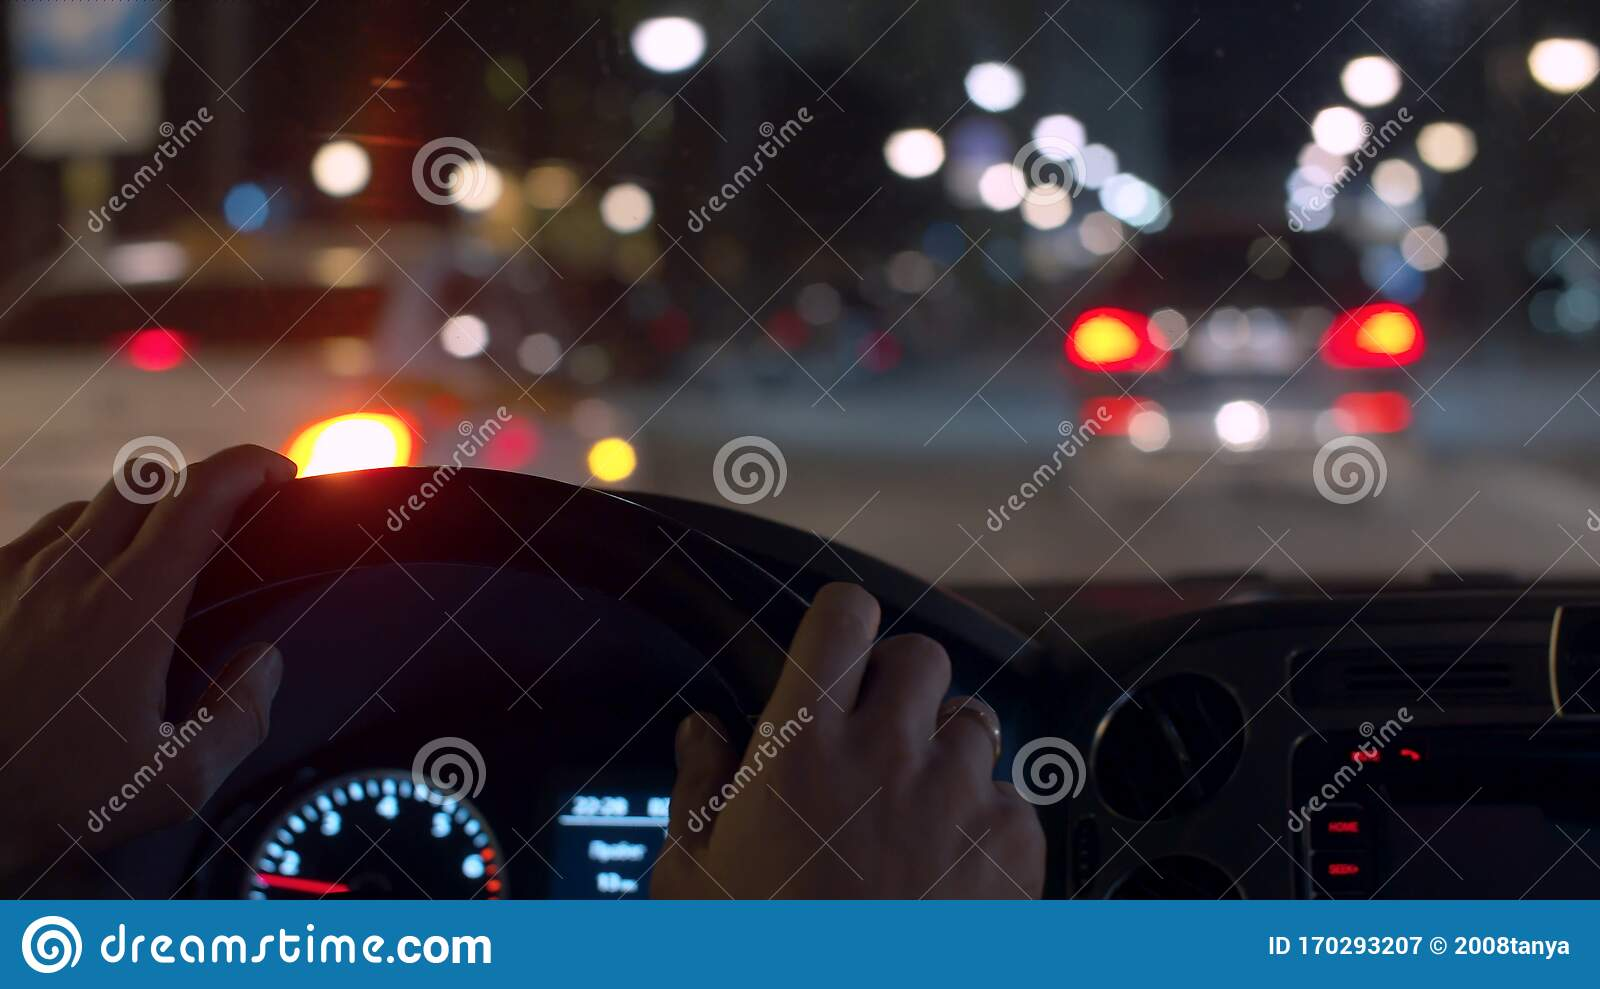 Man S Hands On The Steering Wheel Night Driving Stock Image Image Of Drive Defocused 170293207